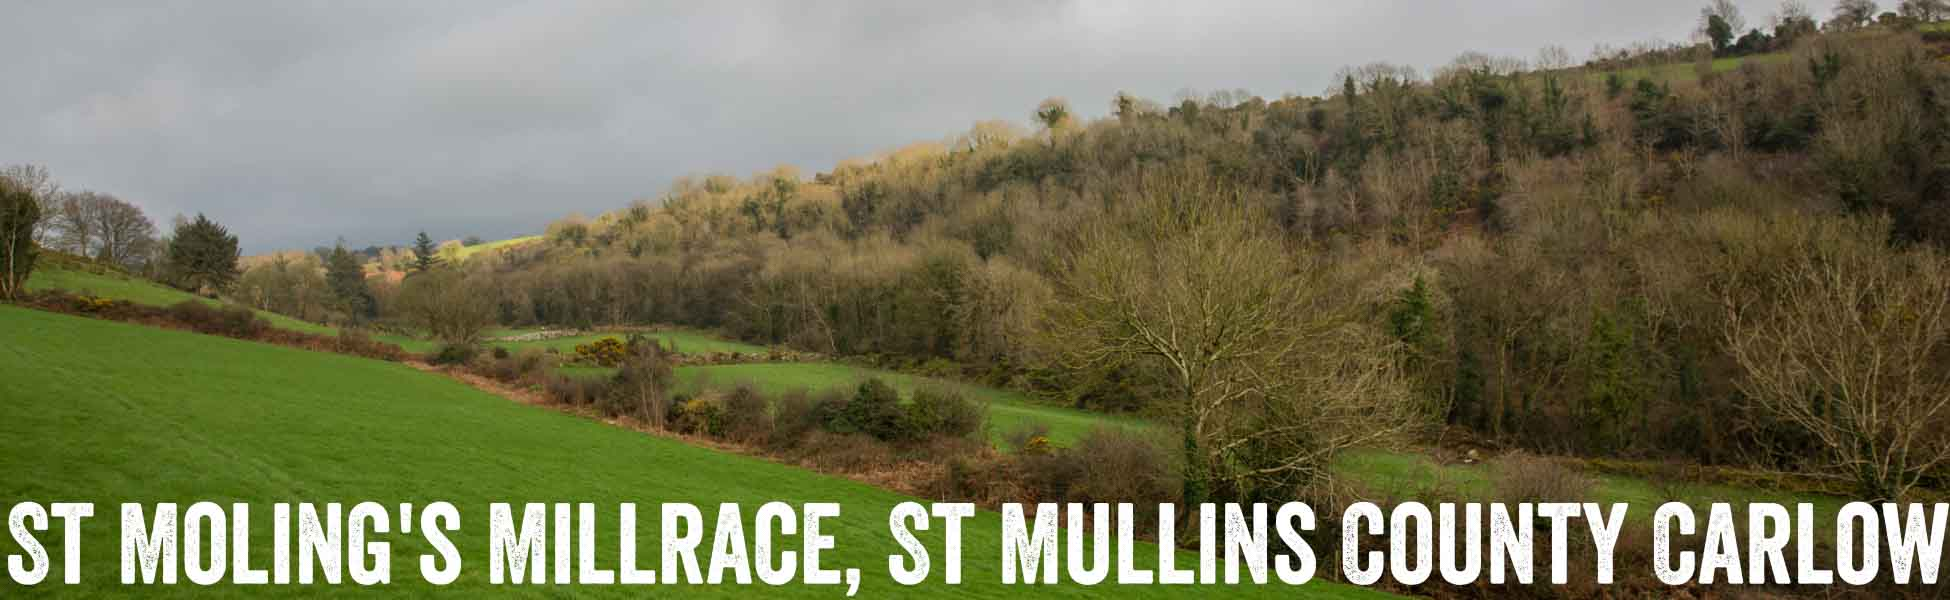 St Molings Millrace County Carlow